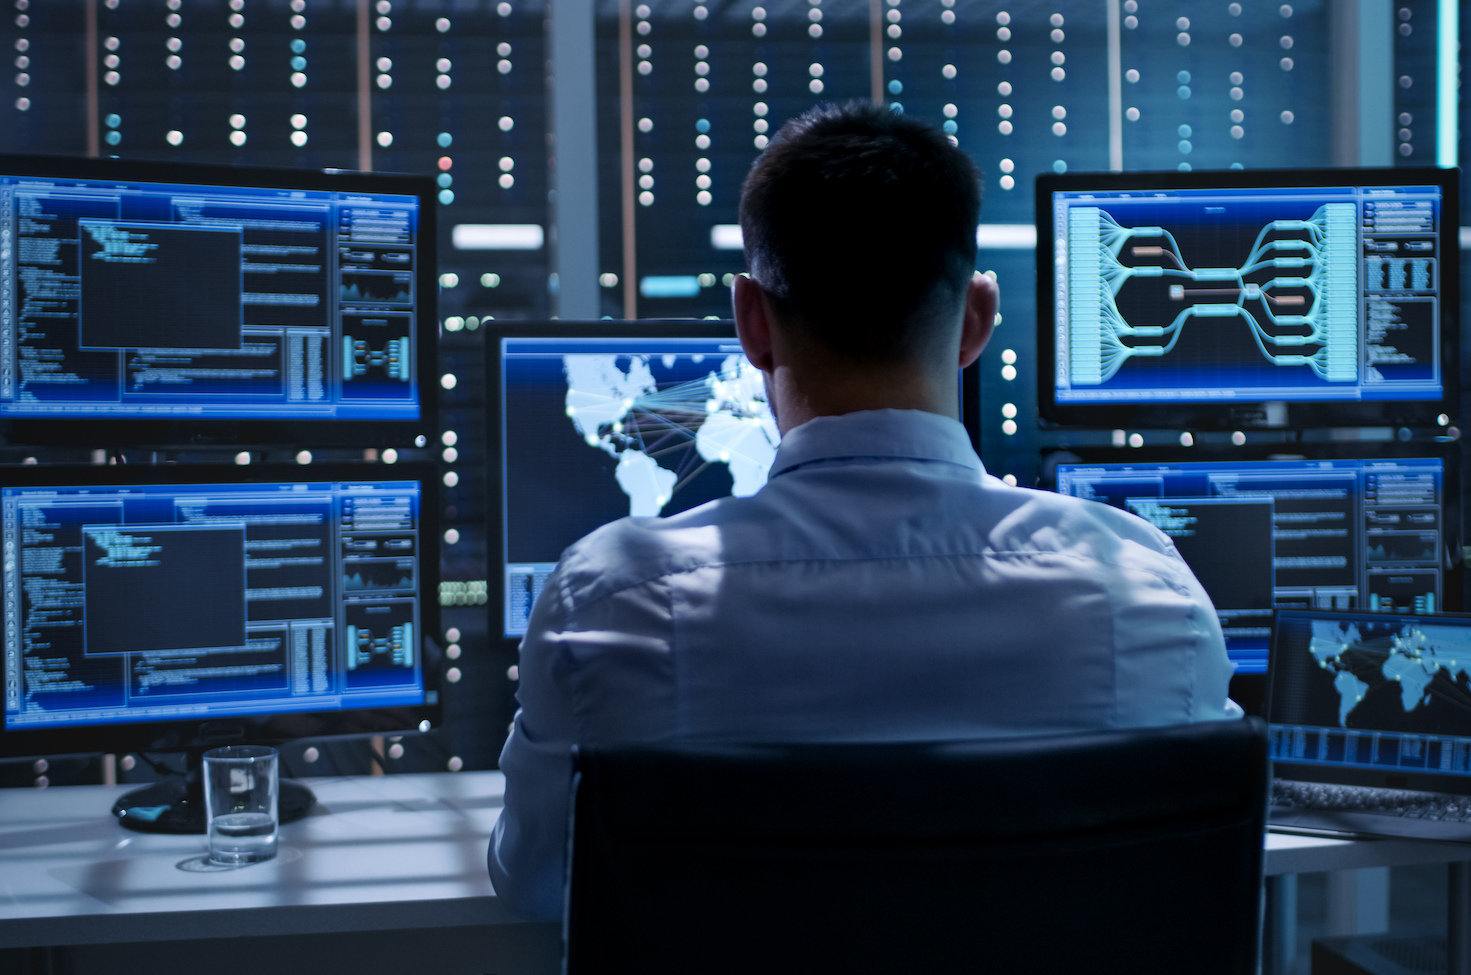 Climate tech needs cybersecurity